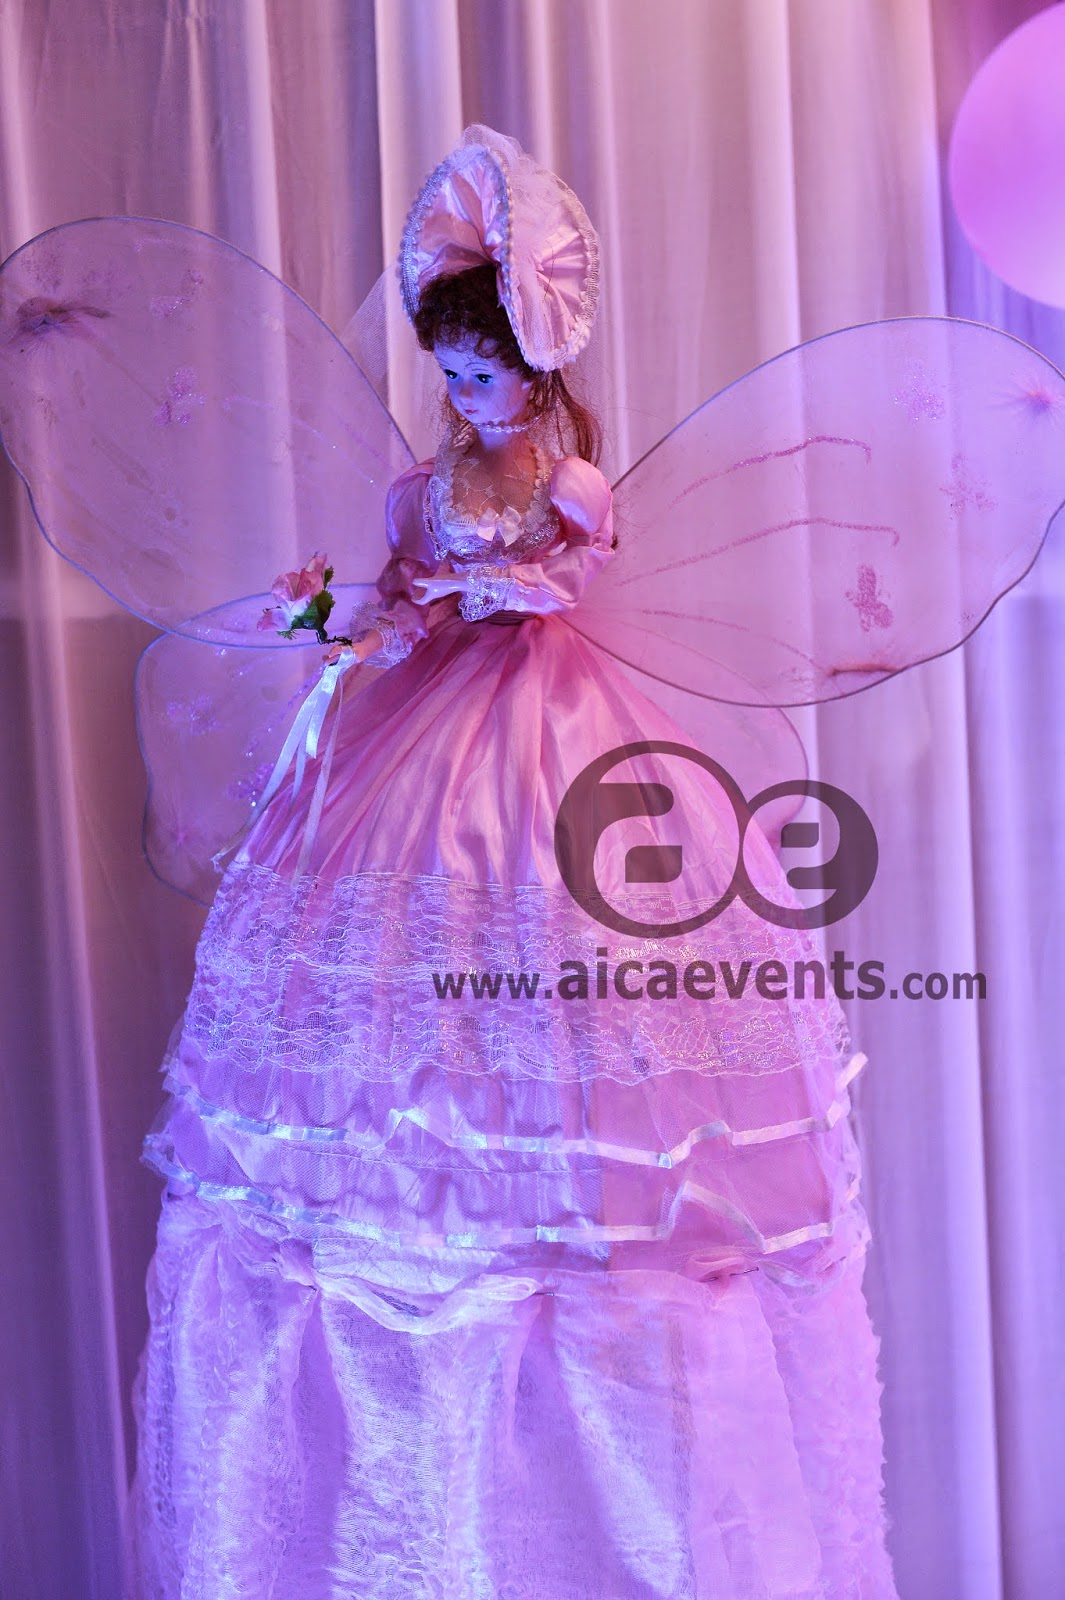 Aicaevents Barbie Theme Decorations By Aica Events